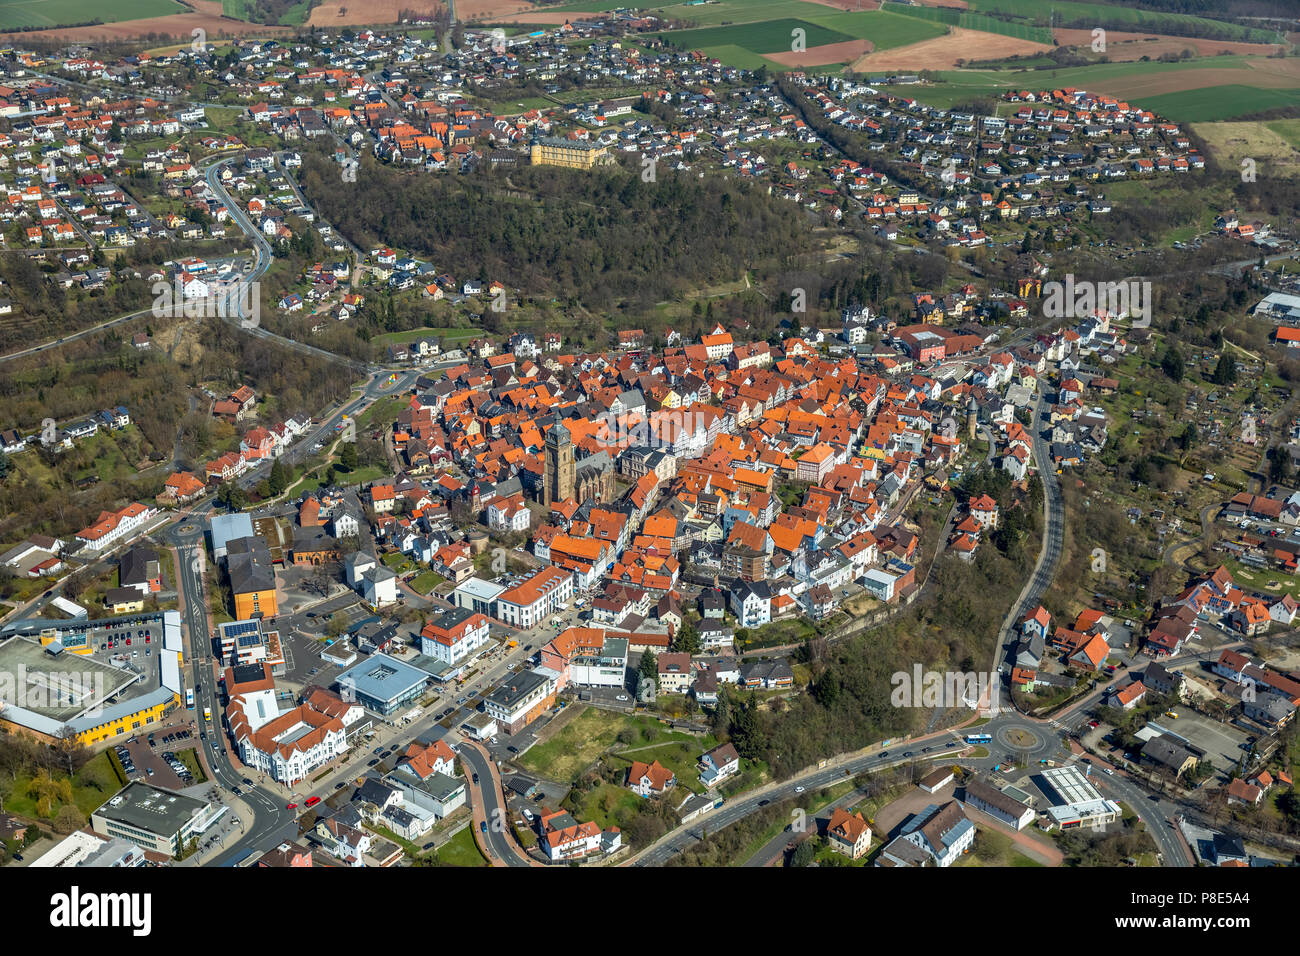 Aerial view, City view with old town, Bad Wildungen, North